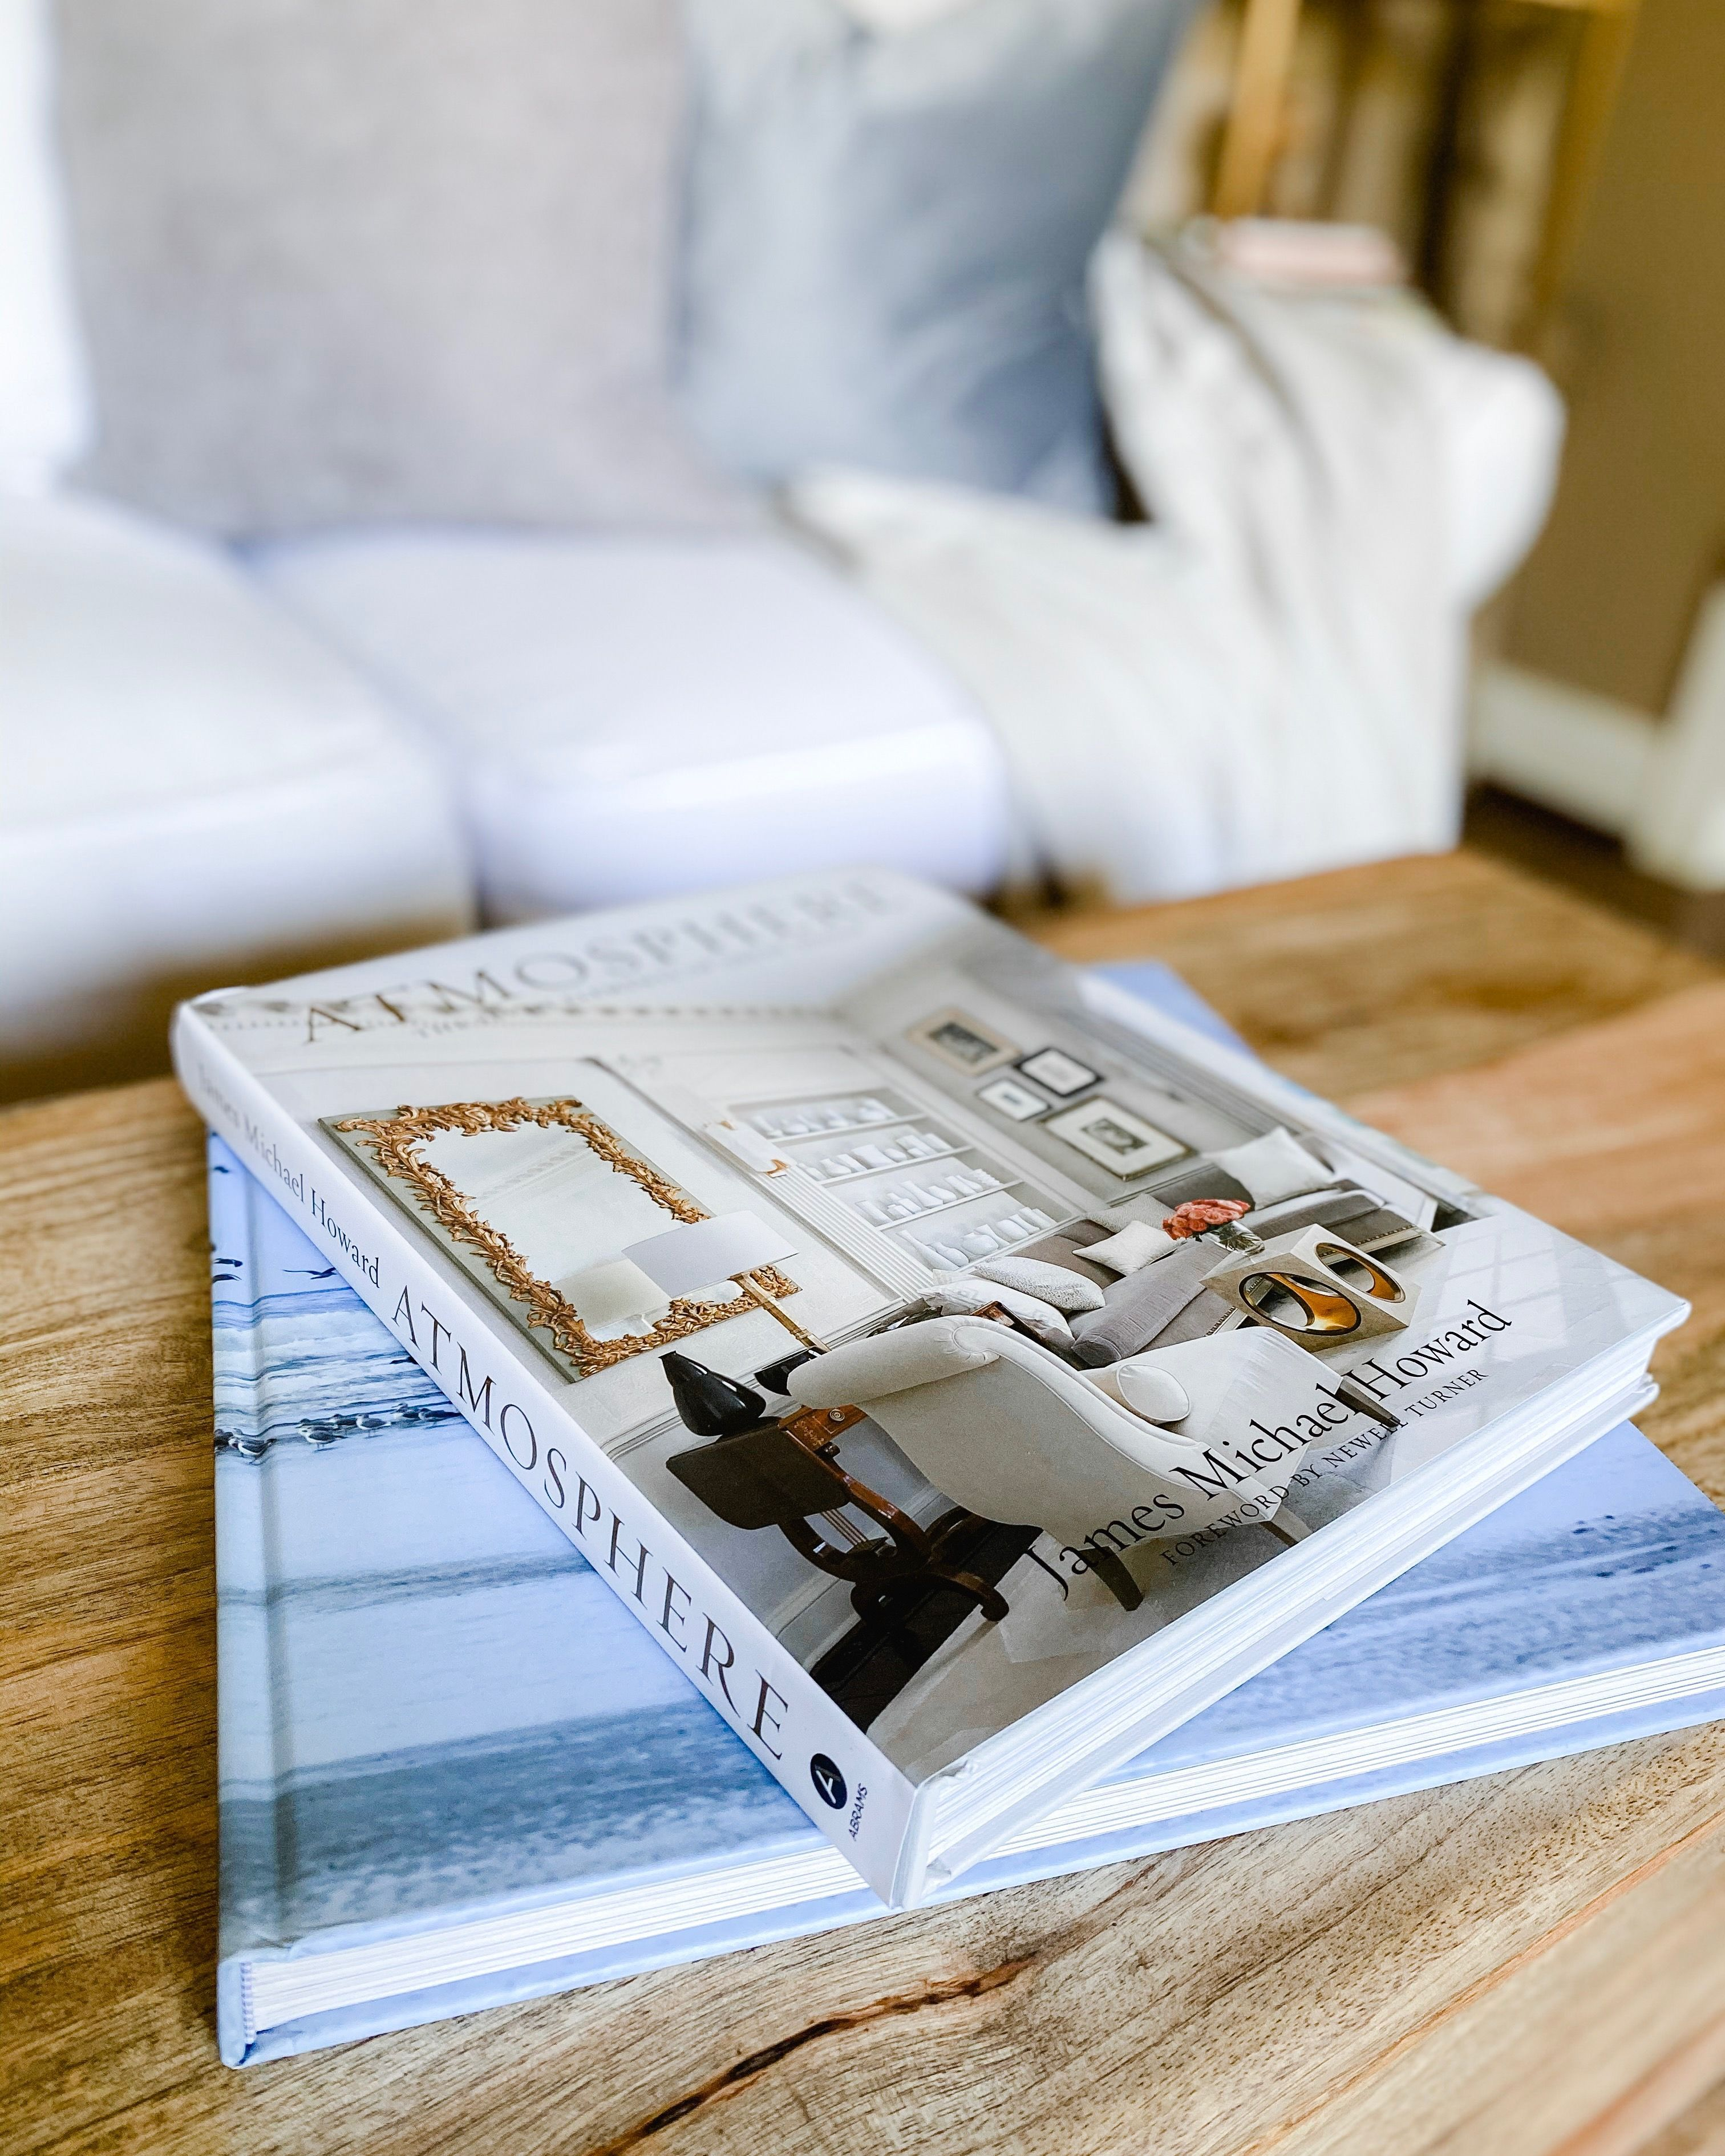 Decorate and style your coffee table and side table with beautiful books to share with guest and read for fun. Great decor for living room from Amazon.   #coffeetable #coffeetablebooks #homedecor #homestyling #homedecorinspo #stylinginspo #decorinspo #homedecorating